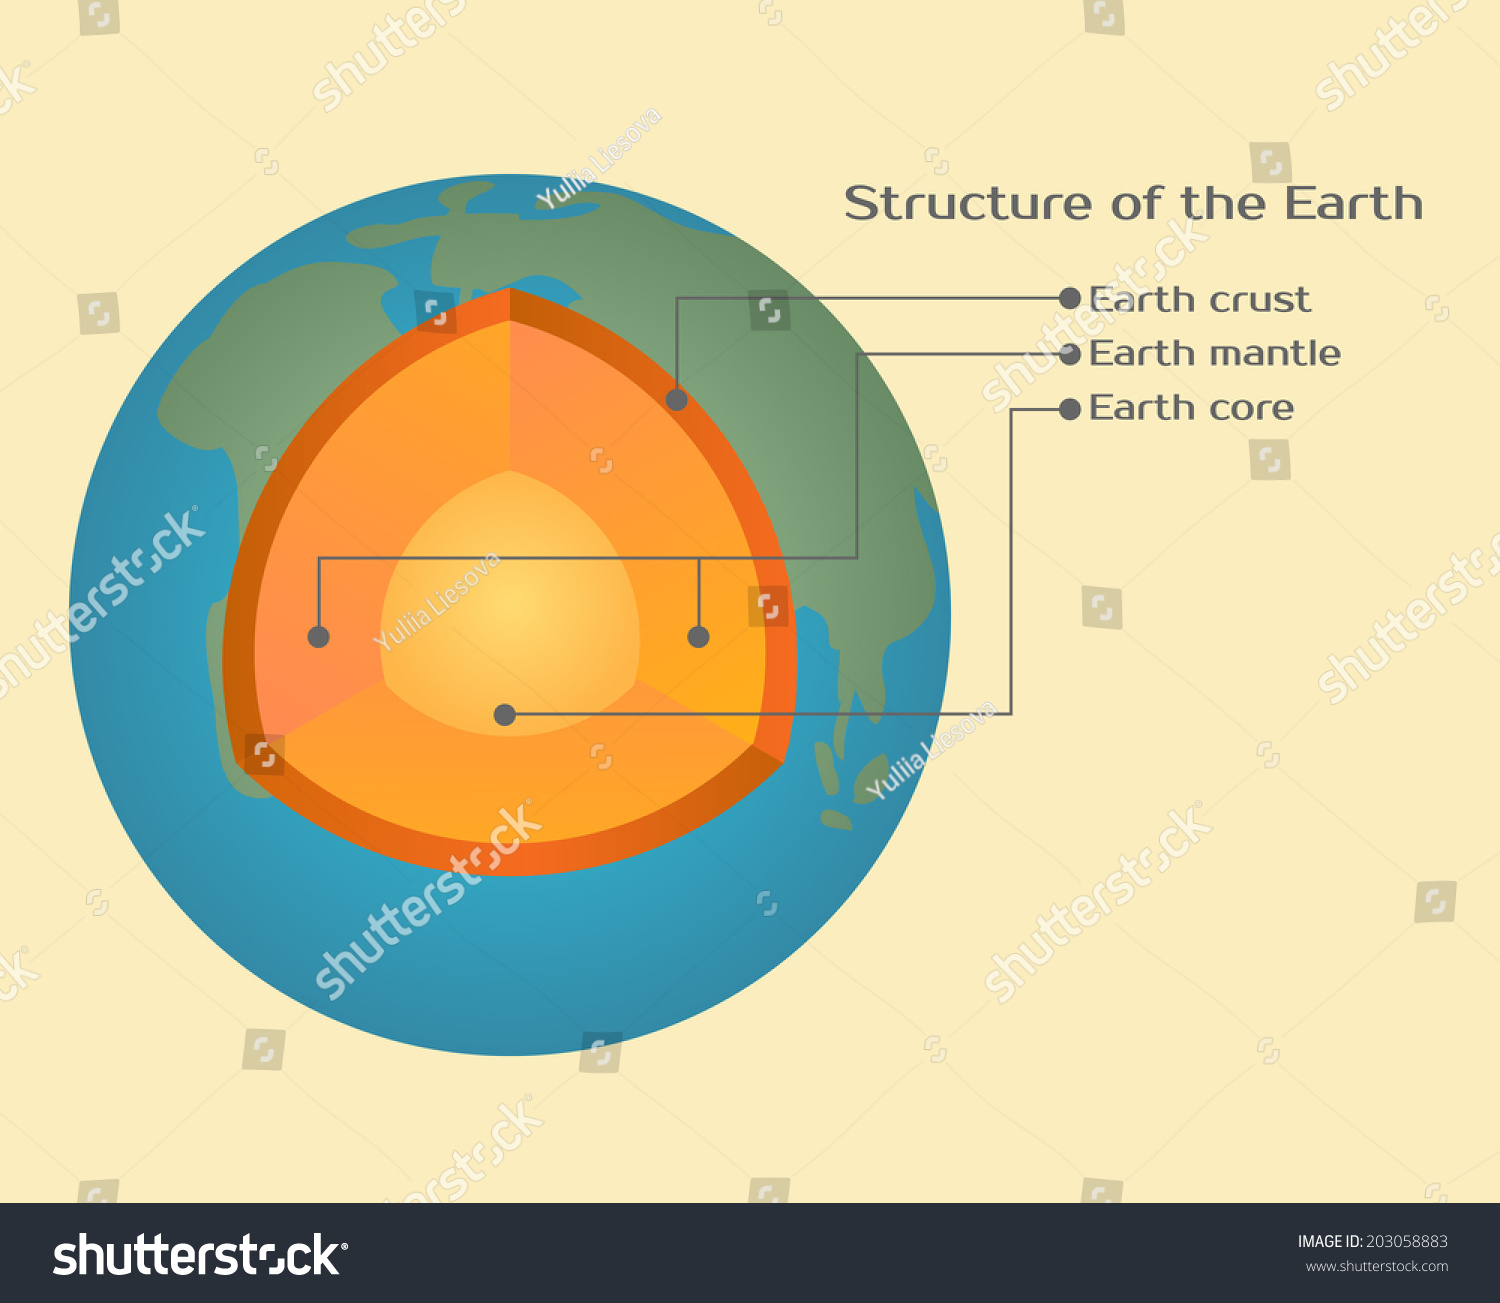 structure of the earth diagram avital 4105l remote start wiring stock vector 203058883 shutterstock